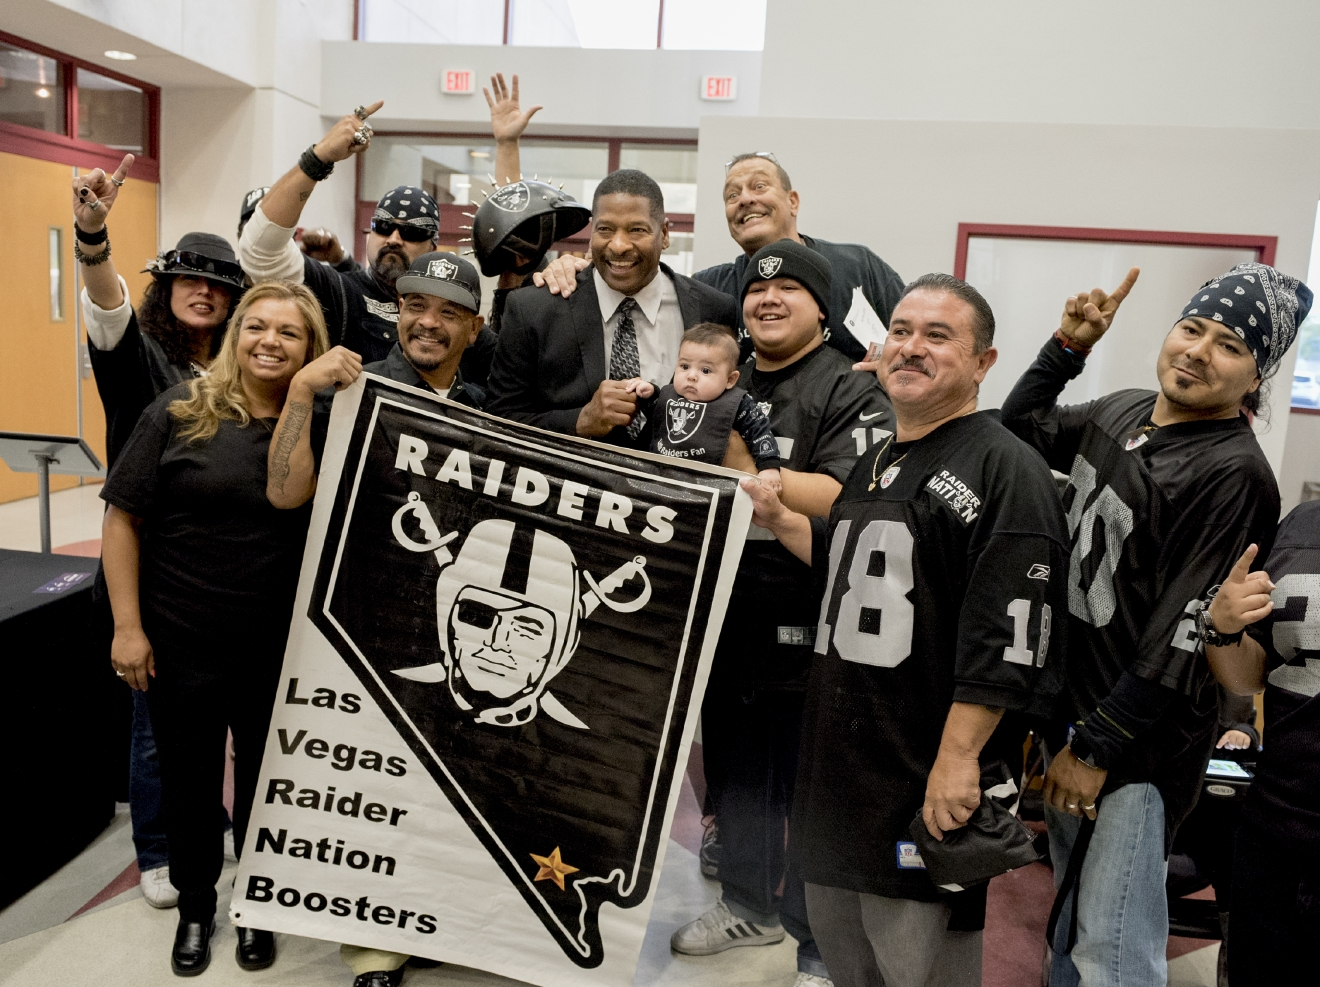 Napoleon McCallum, center, former Los Angeles Raiders running back, is surrounded by local members of the Raiders Nation before a meeting of the Southern Nevada Tourism Infrastructure Committee at the Stan Fulton Building, UNLV on Thursday, April 28, 2016. The committee was to hear arguments to bring the Oakland Raiders to Las Vegas and build a domed stadium for them near the Strip.  (Mark Damon/Las Vegas News Bureau)